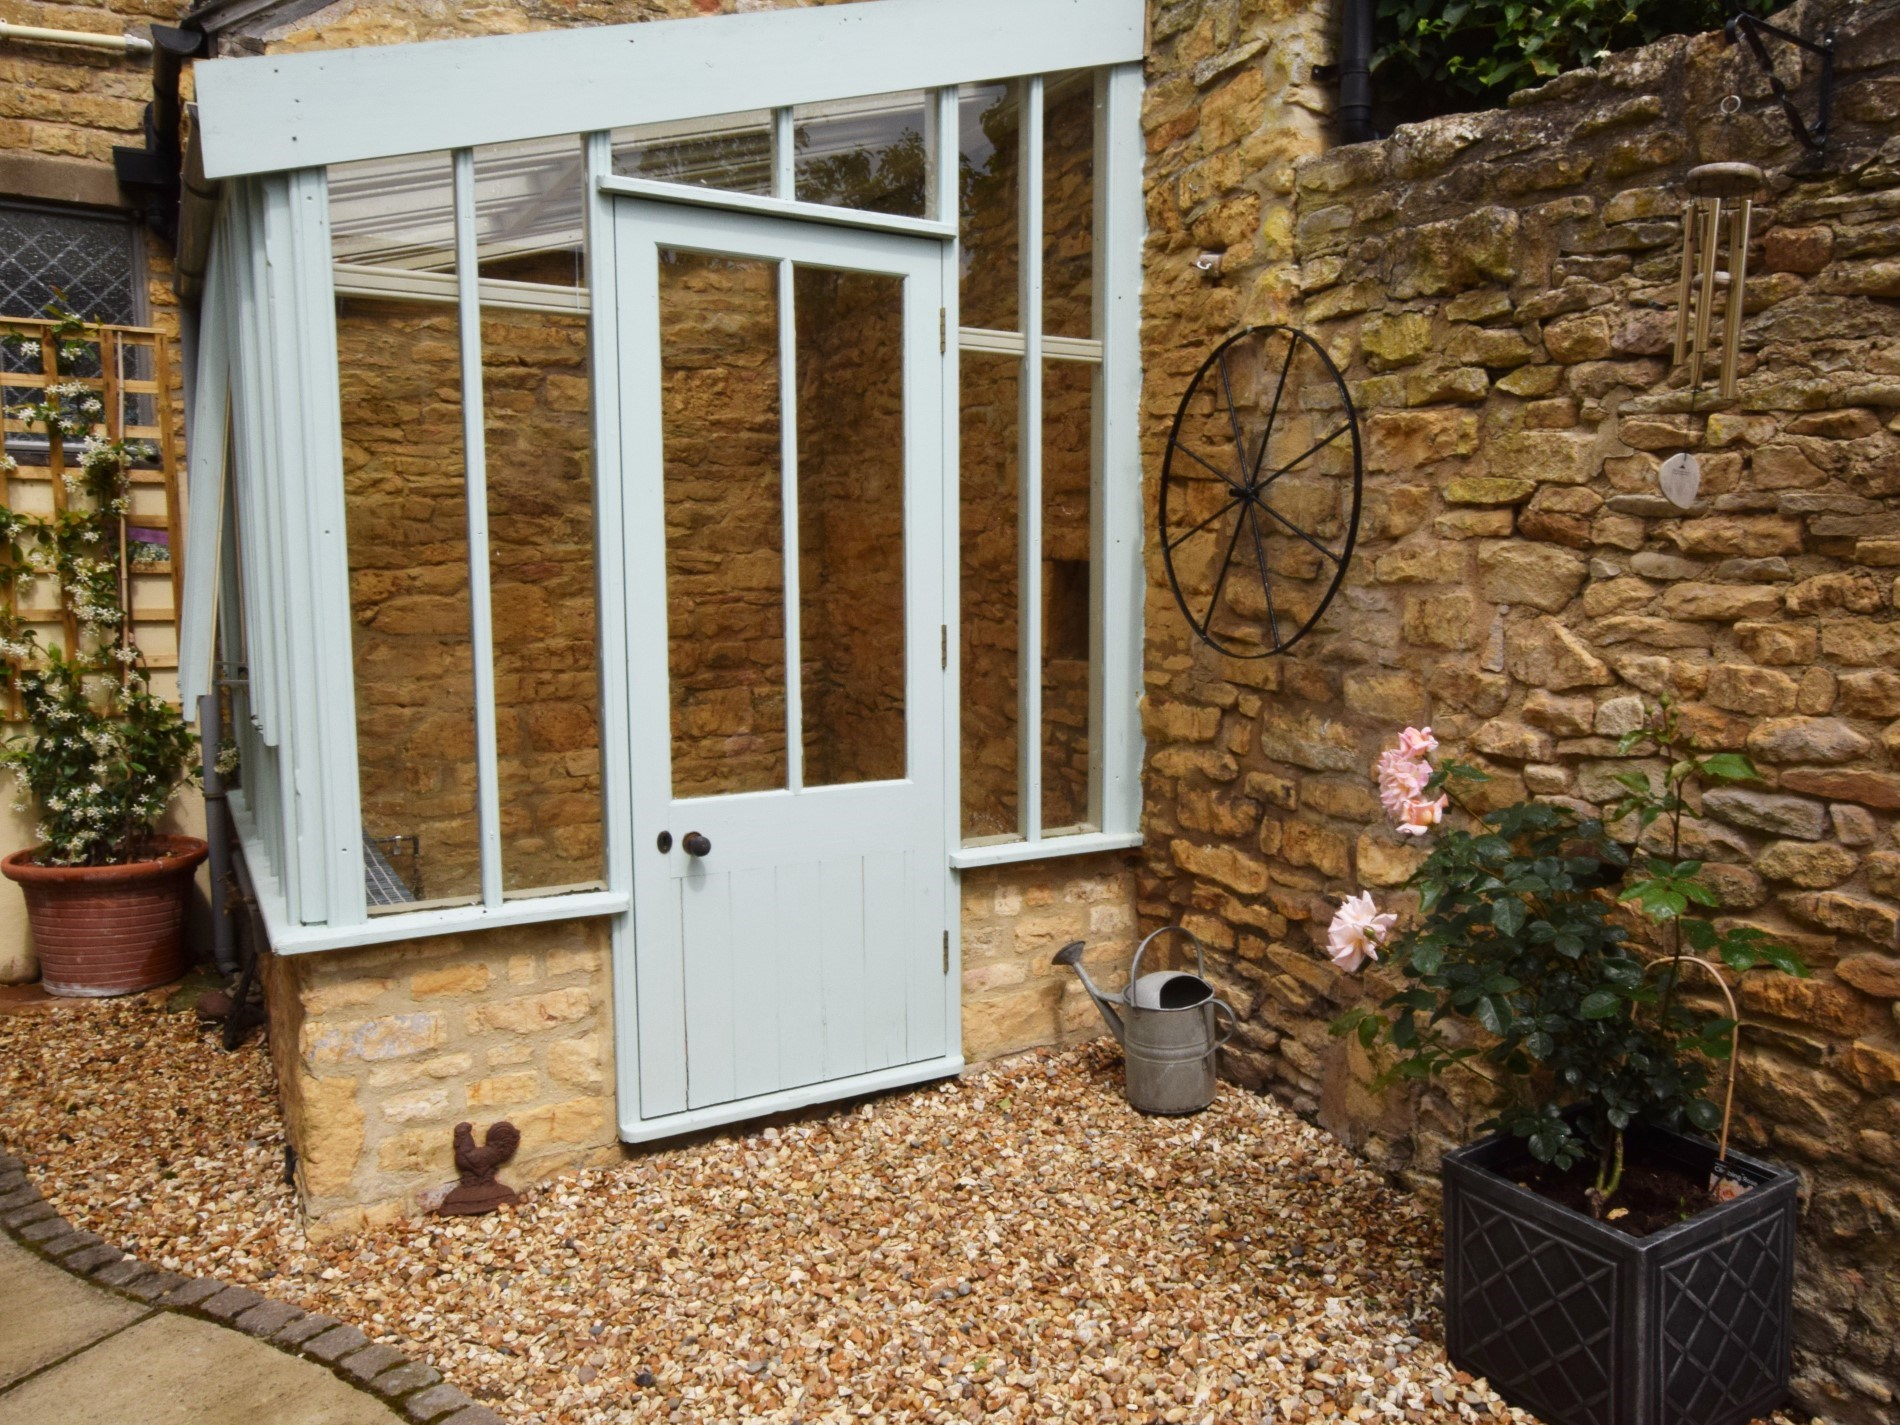 Lovely sunroom in the enclosed courtyard